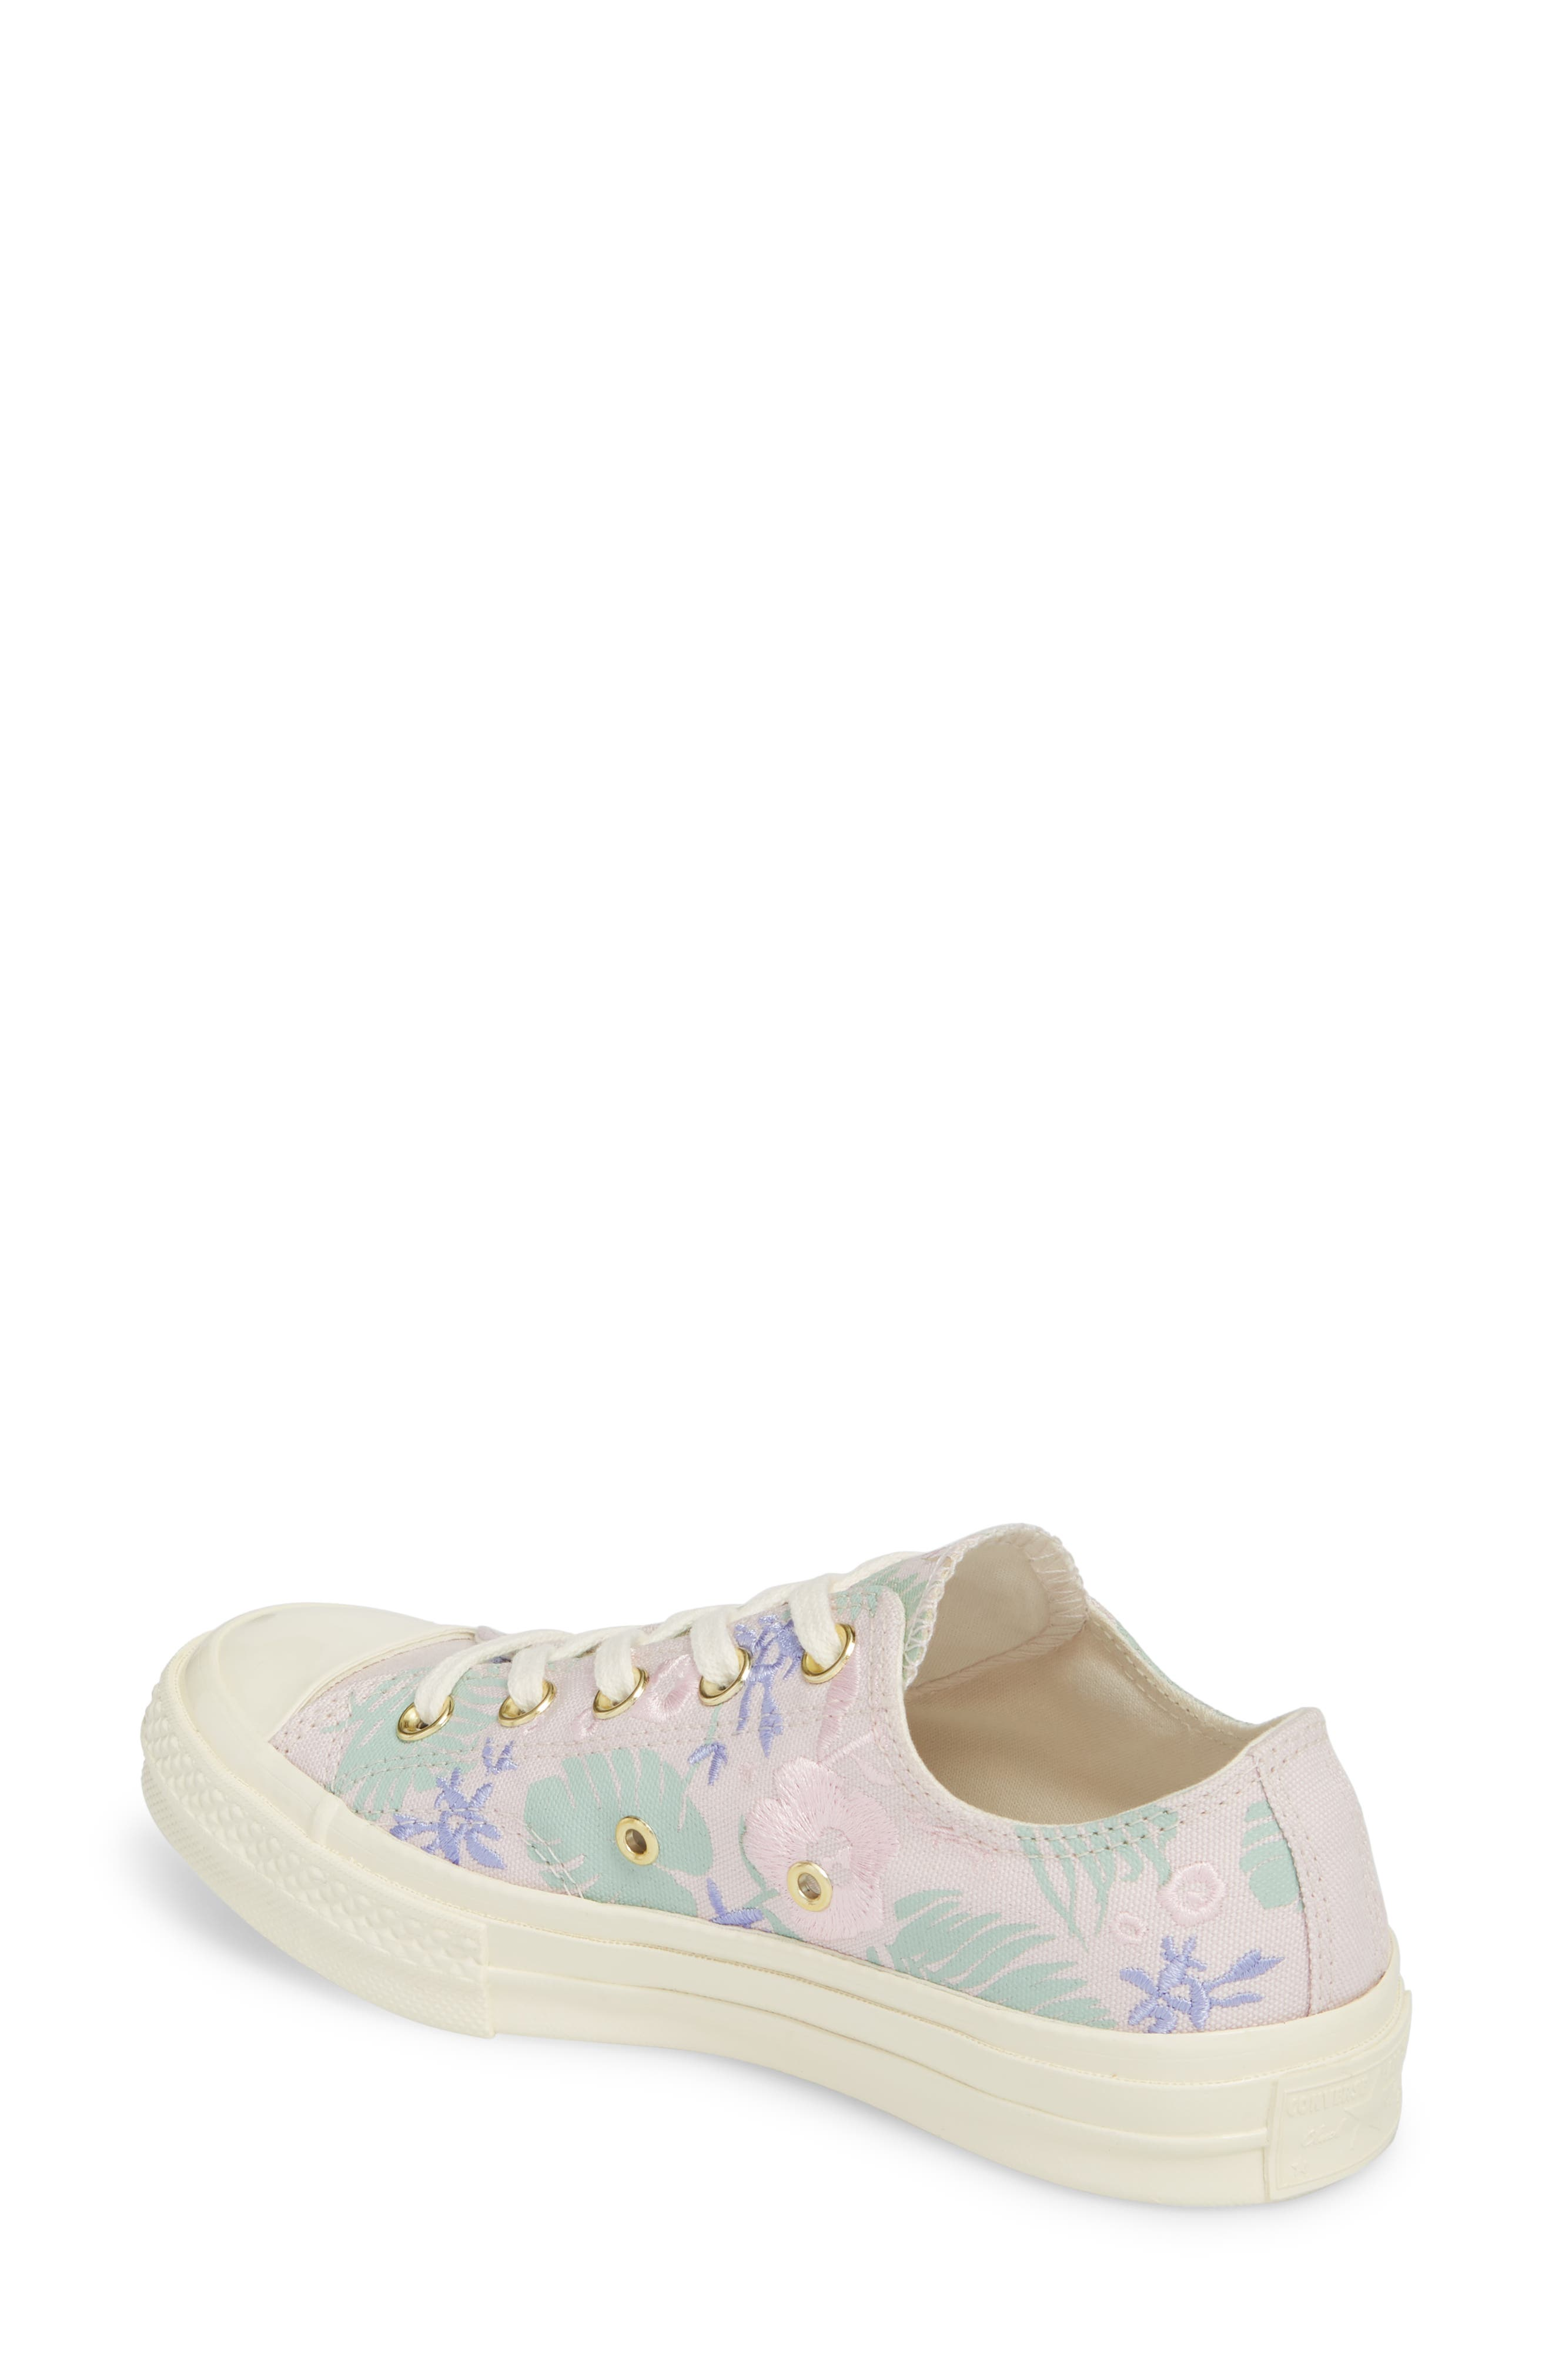 Chuck Taylor<sup>®</sup> All Star<sup>®</sup> 70 Palm Print Low Top Sneaker,                             Alternate thumbnail 2, color,                             658